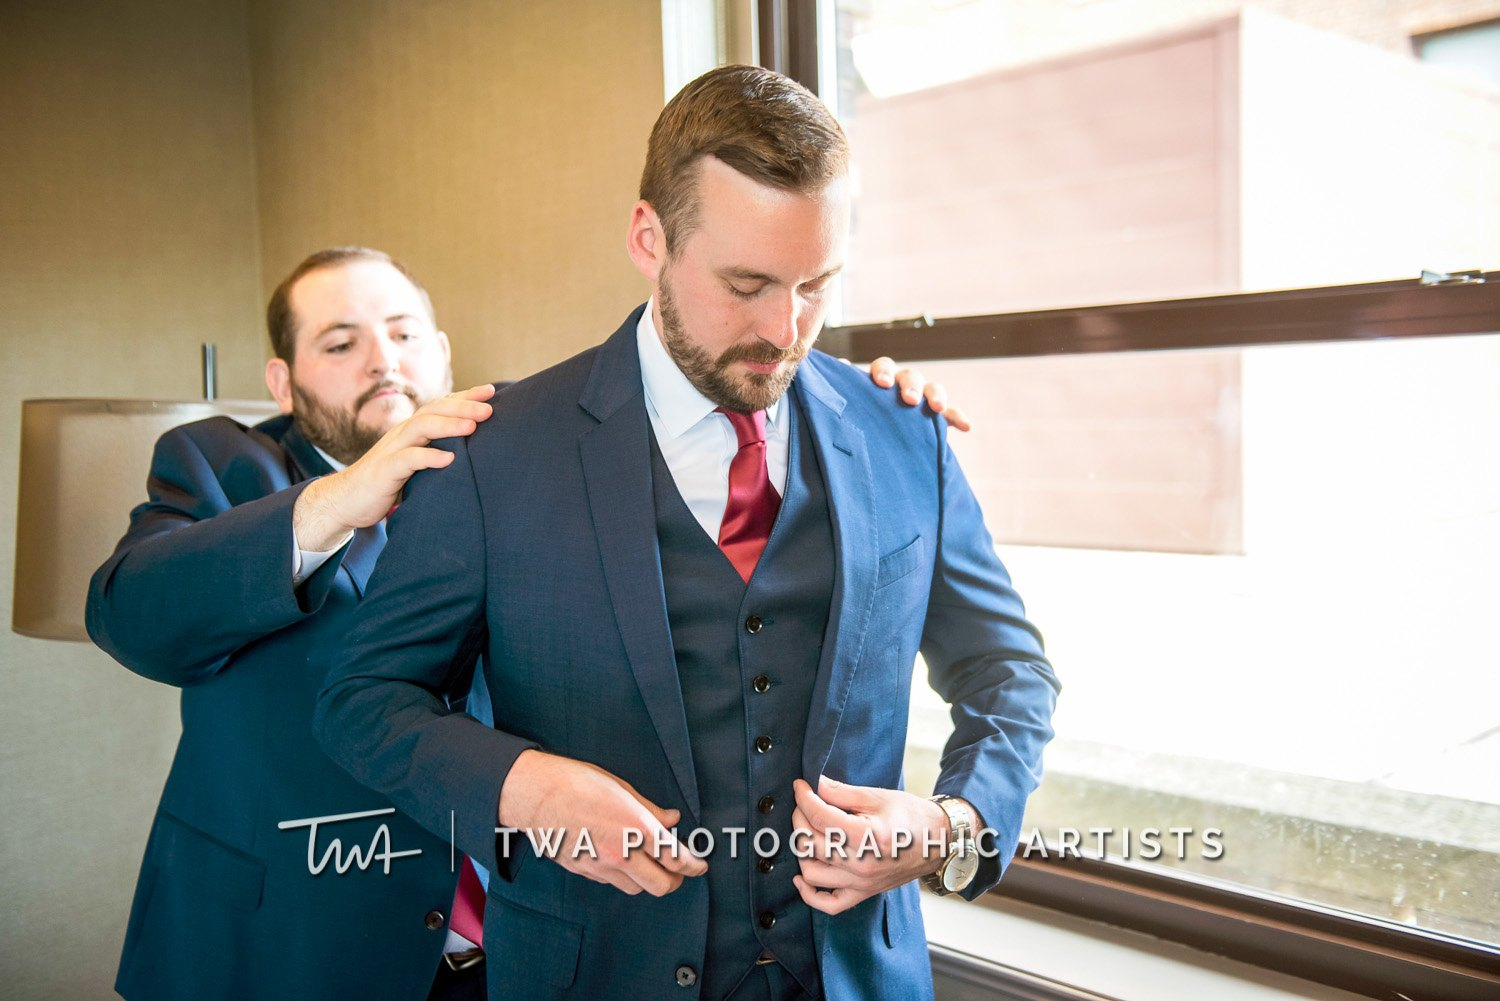 Chicago-Wedding-Photographer-TWA-Photographic-Artists-White-Pines-Banquets_Petersen_Sherman_ZZ_DL-007_0078